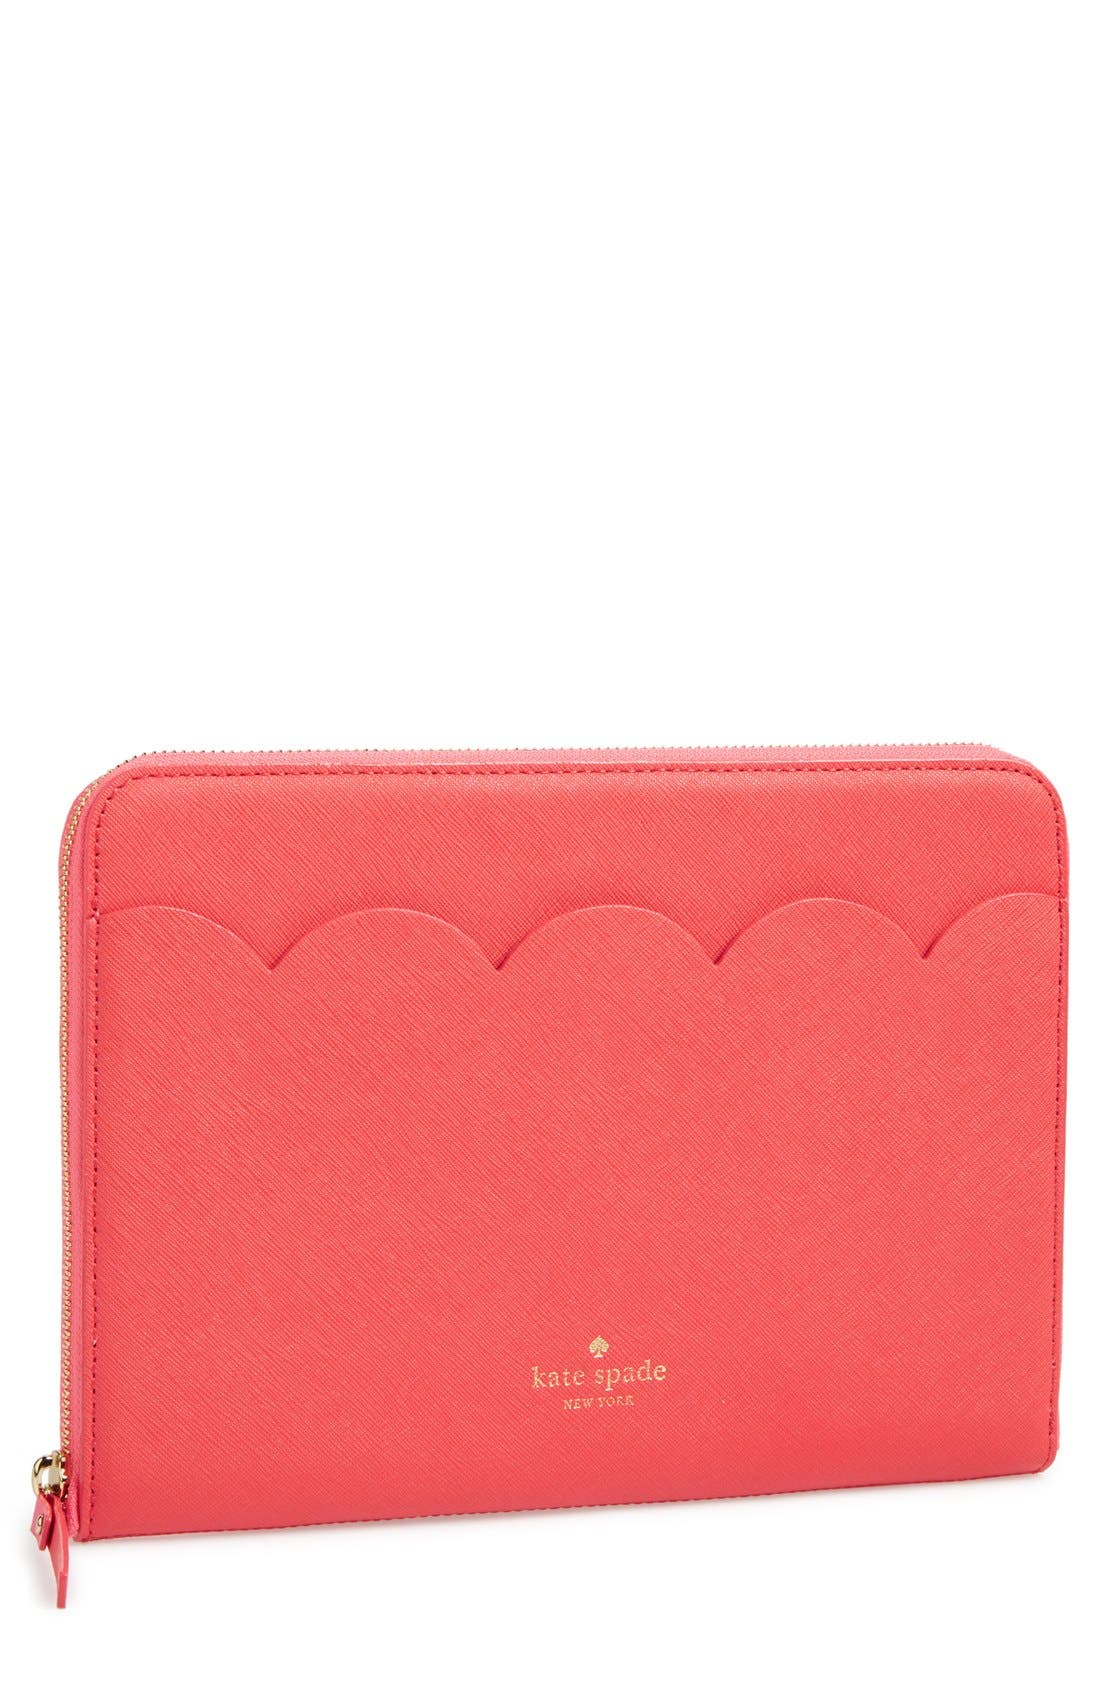 Alternate Image 1 Selected - kate spade new york scalloped iPad Air sleeve